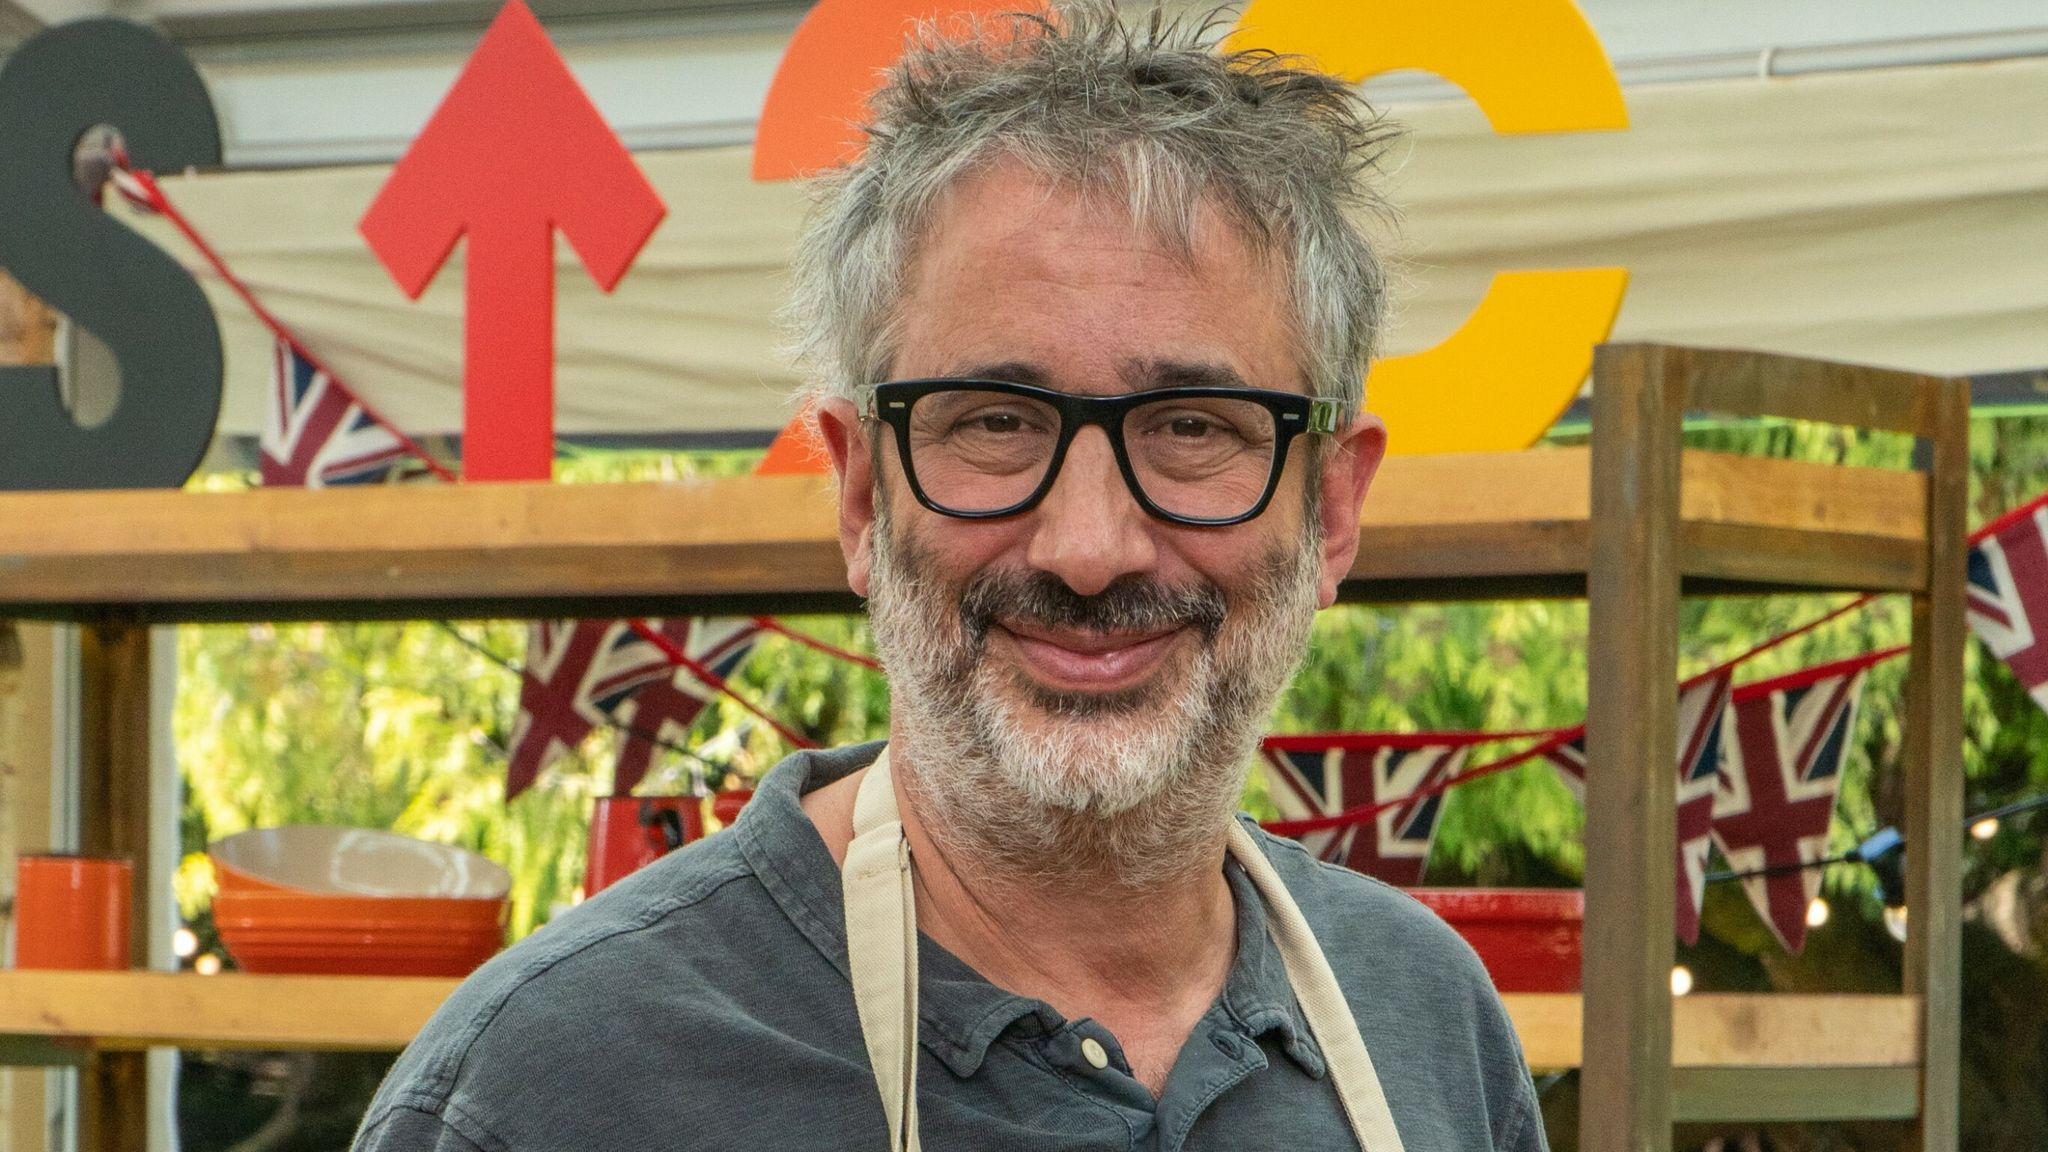 David Baddiel is taking part in The Great Celebrity Bake Off. Pic: Channel 4